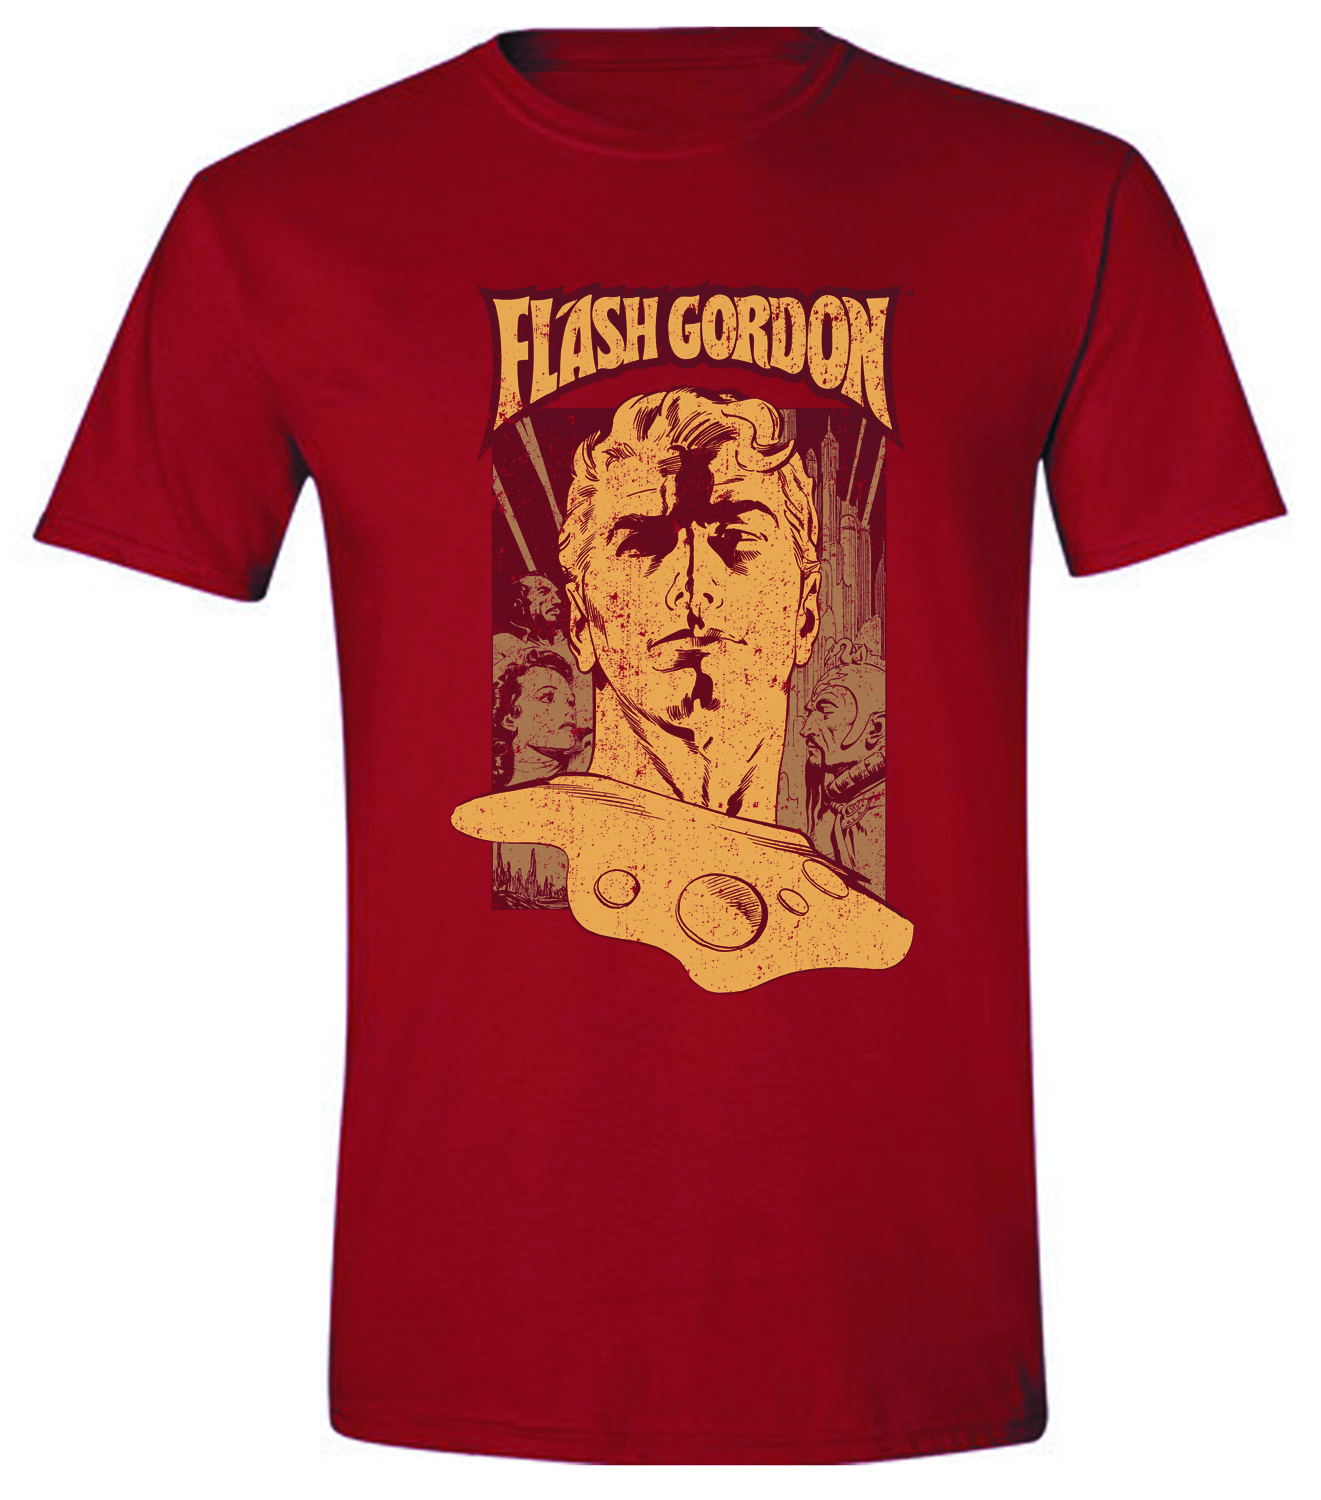 FLASH GORDON POSTER PX RED T/S LG